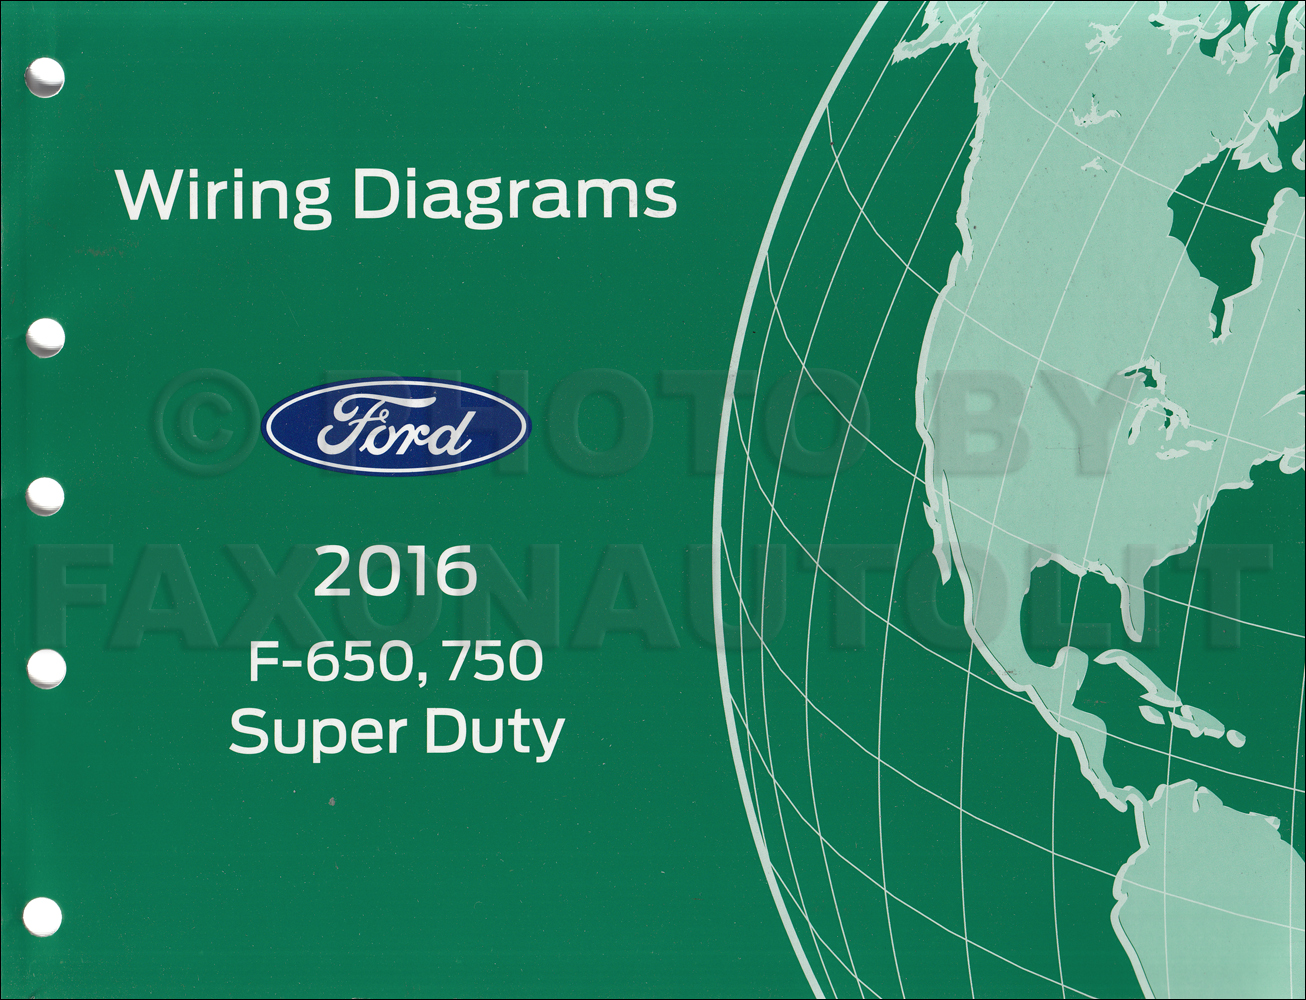 2016 ford f 650 and f 750 super duty truck wiring diagram manual 2016 ford f 650 and f 750 super duty truck wiring diagram manual original